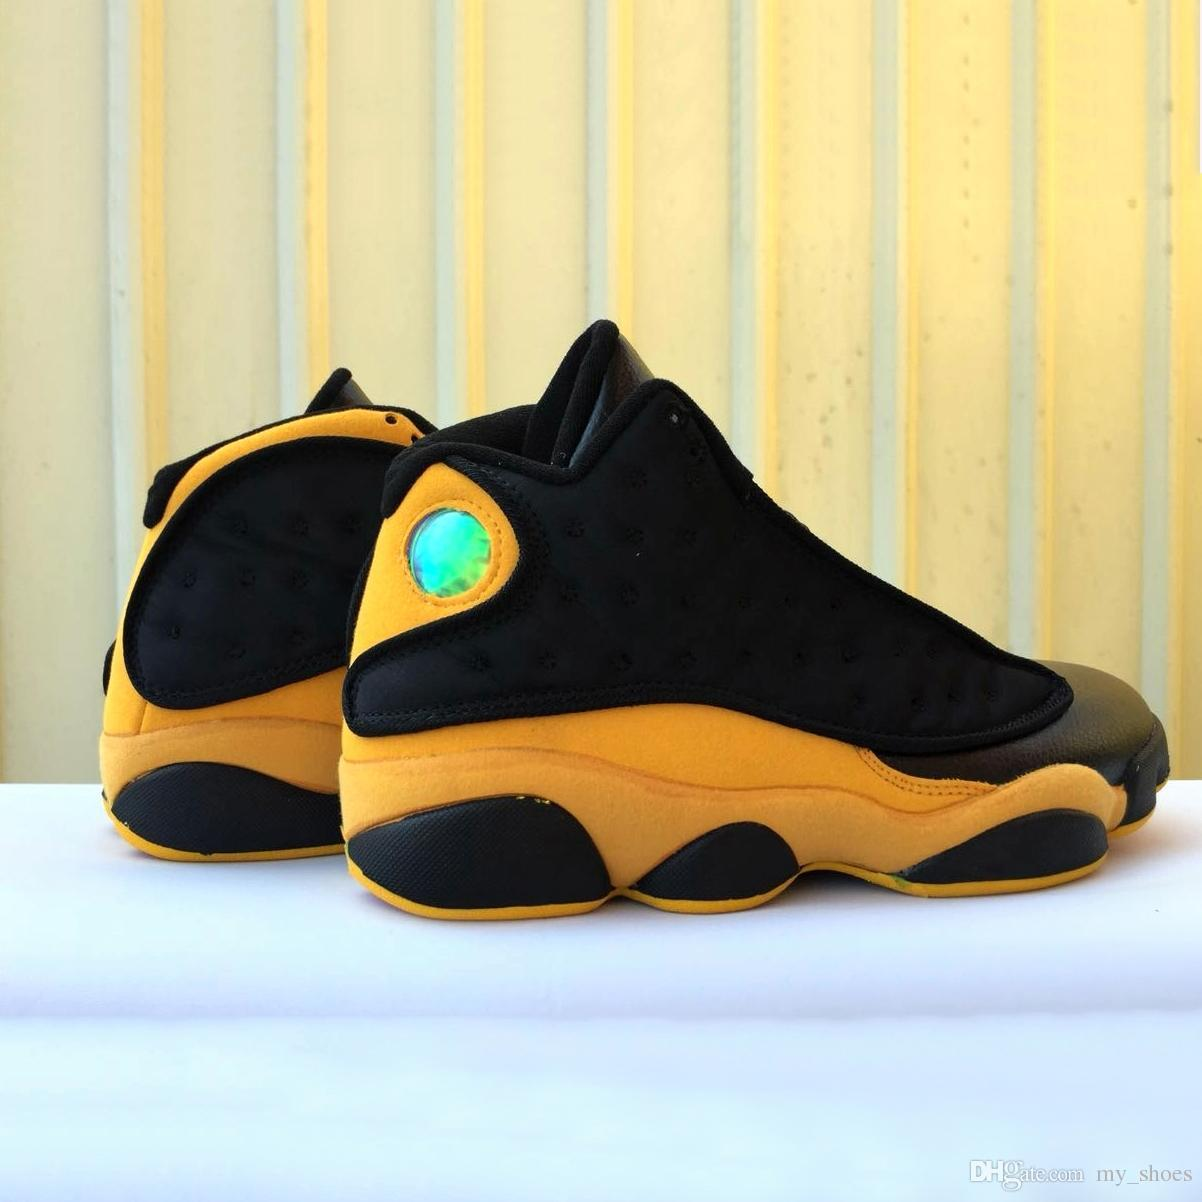 eb323290b82b60 2019 2018 New Sneaker 13 Melo Class Of 2003 Men Basketball Shoes Black  Yellow Outdoor Casual 13s Athletic Sports Sneakers Size US8 13 From  My shoes